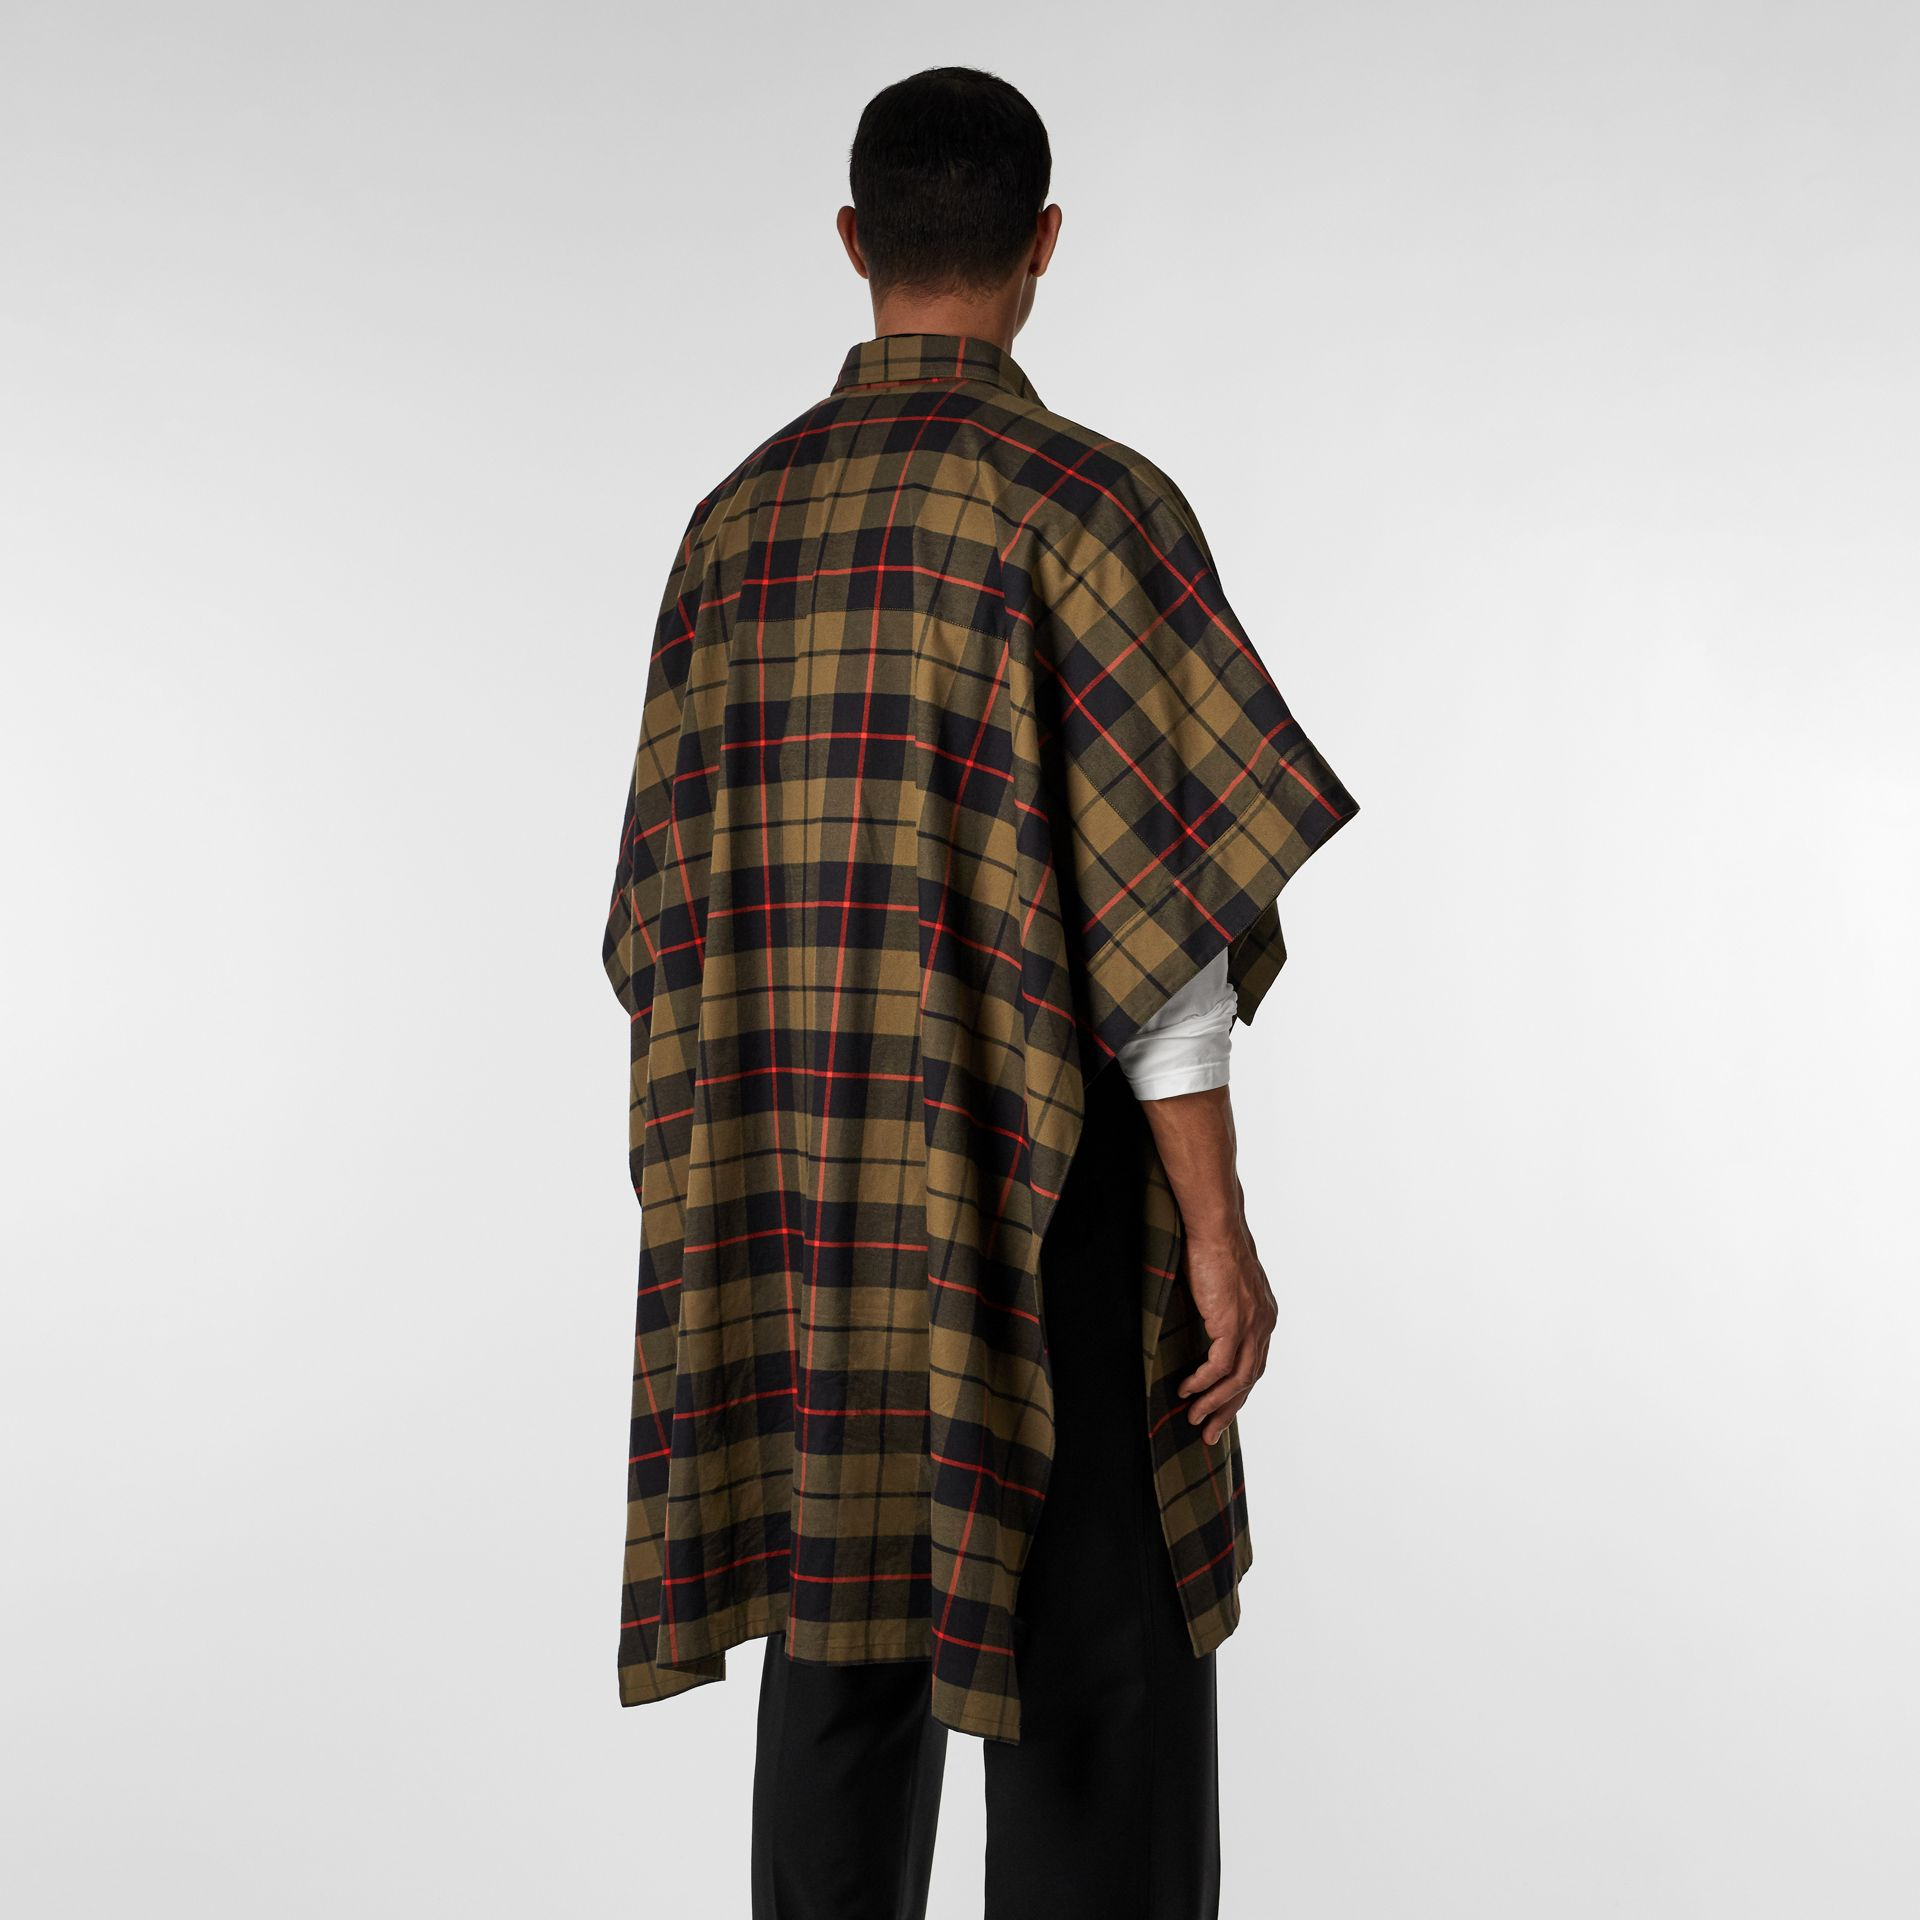 Monogram Motif Check Cotton Oversized Poncho in Military Olive | Burberry United States - gallery image 8